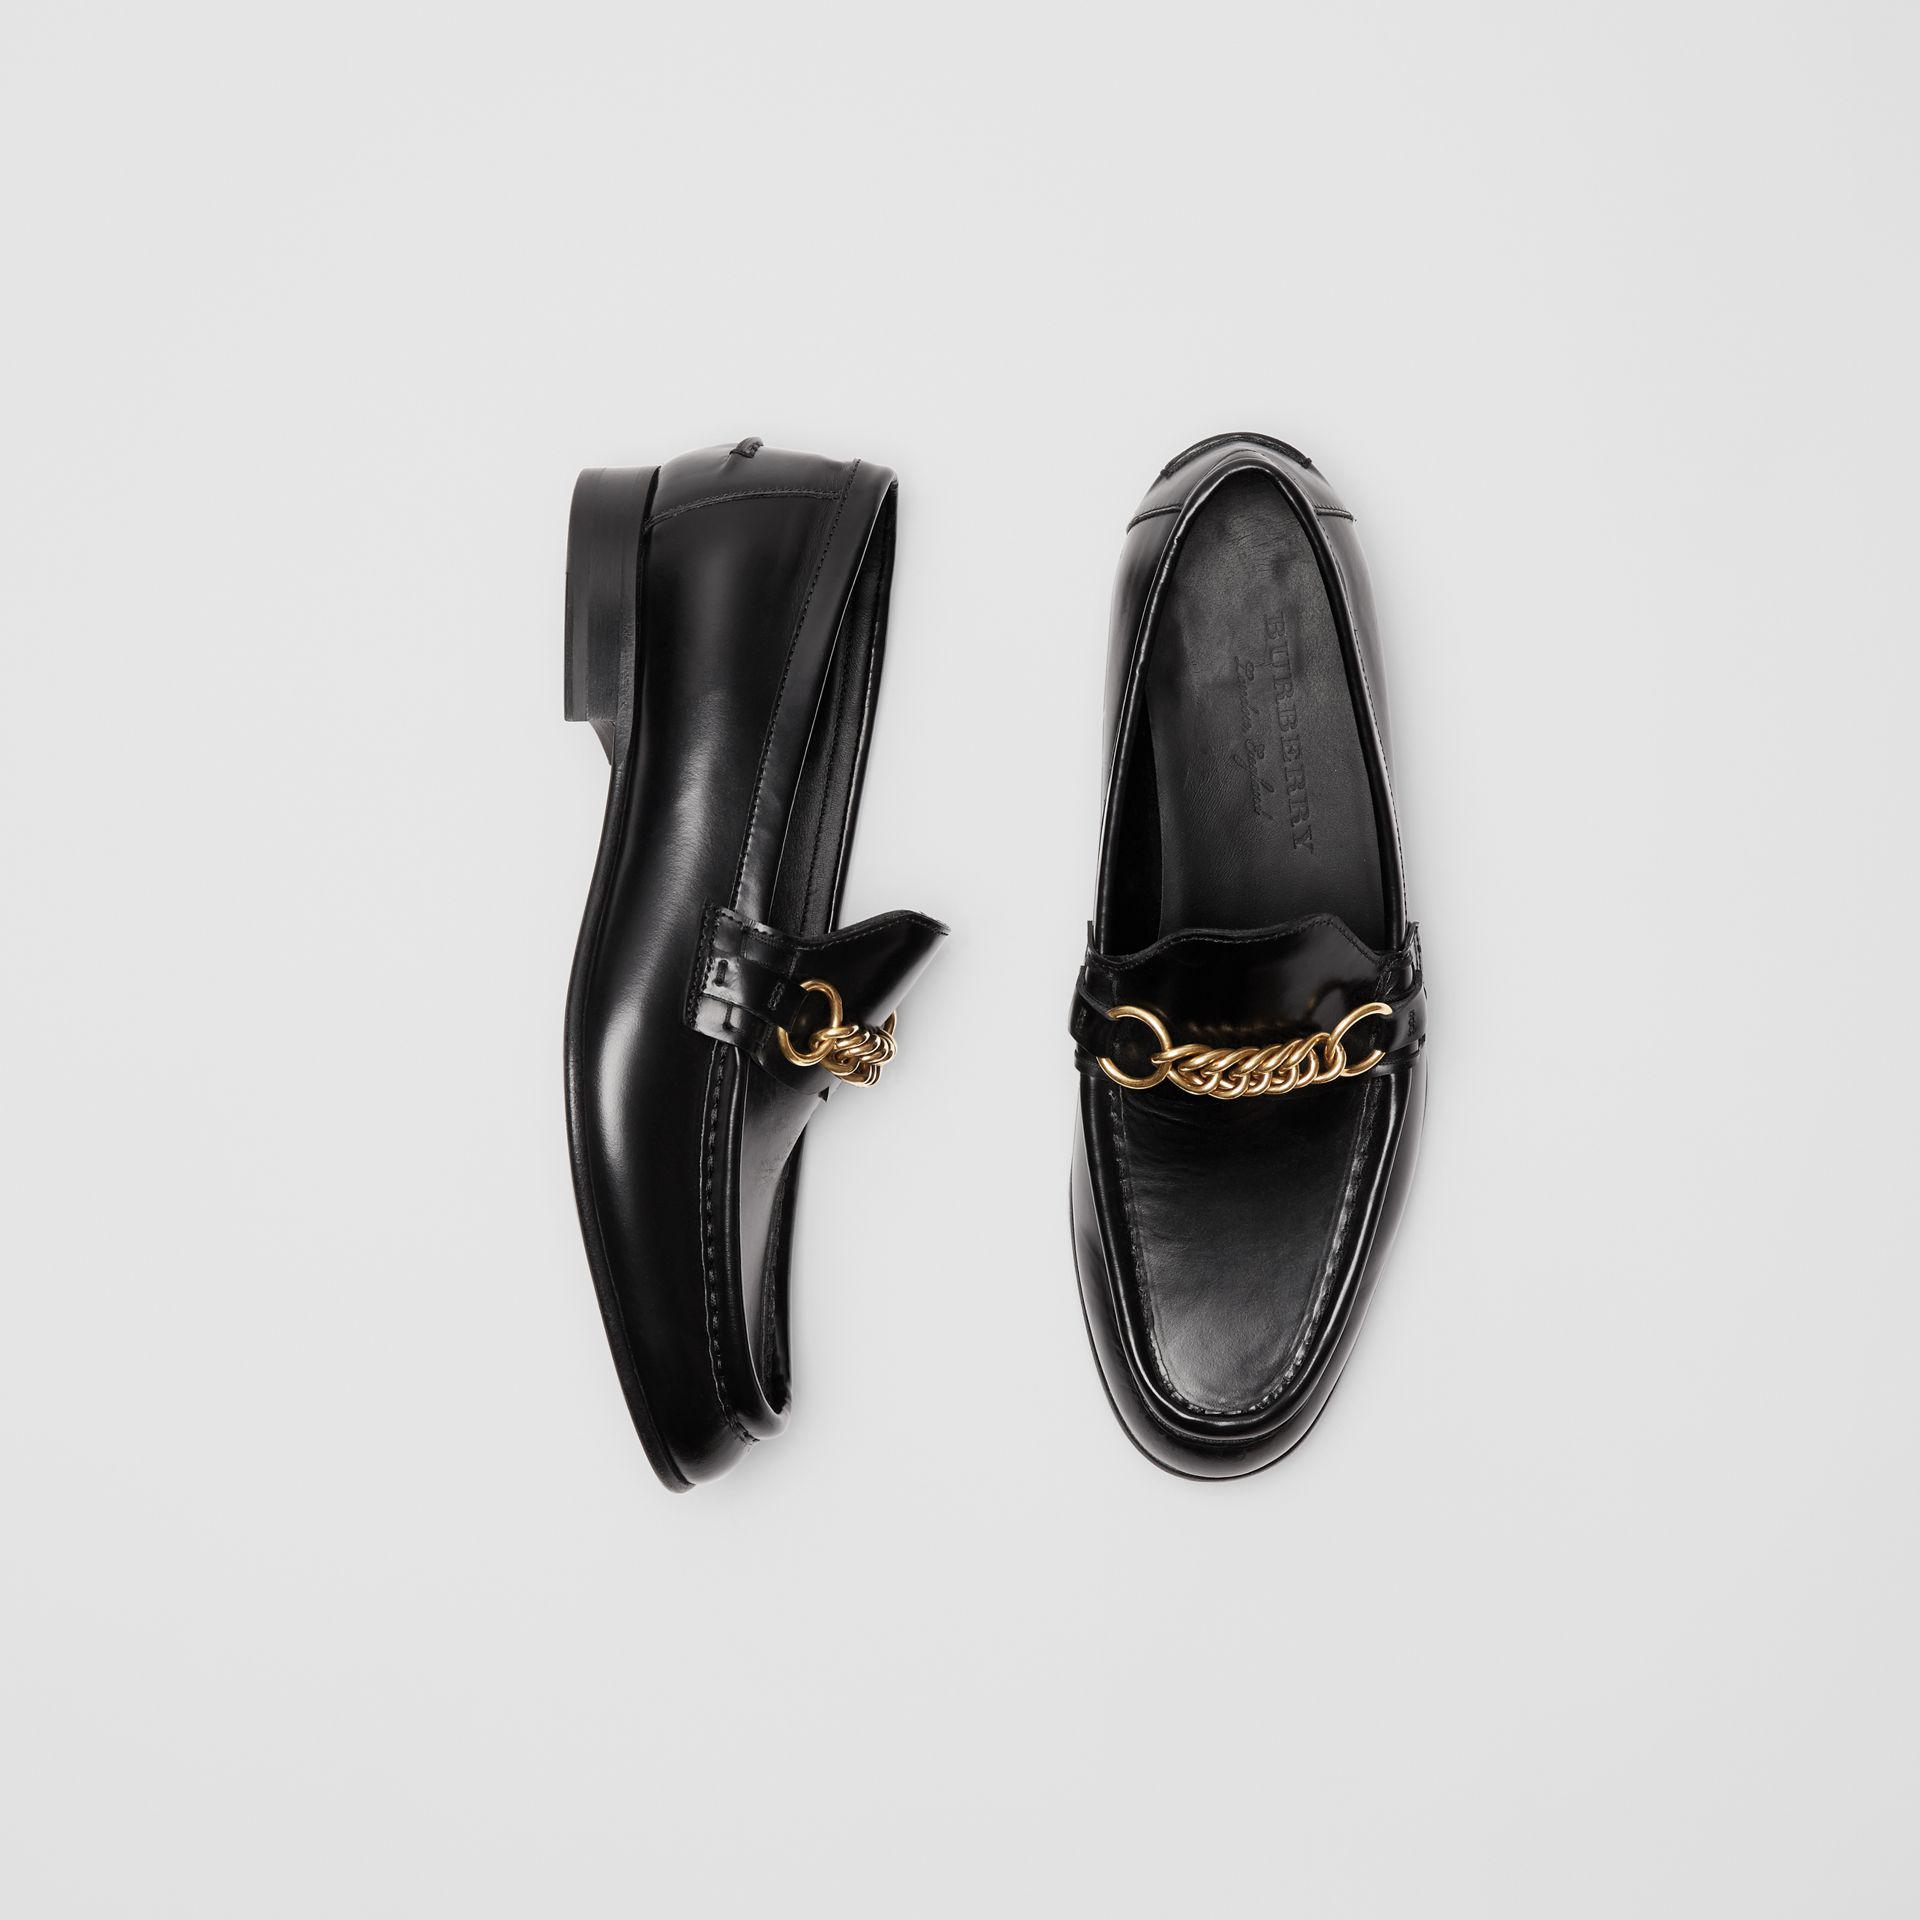 39a94cb3d9ed Burberry - Black The Leather Link Loafer - Lyst. View fullscreen